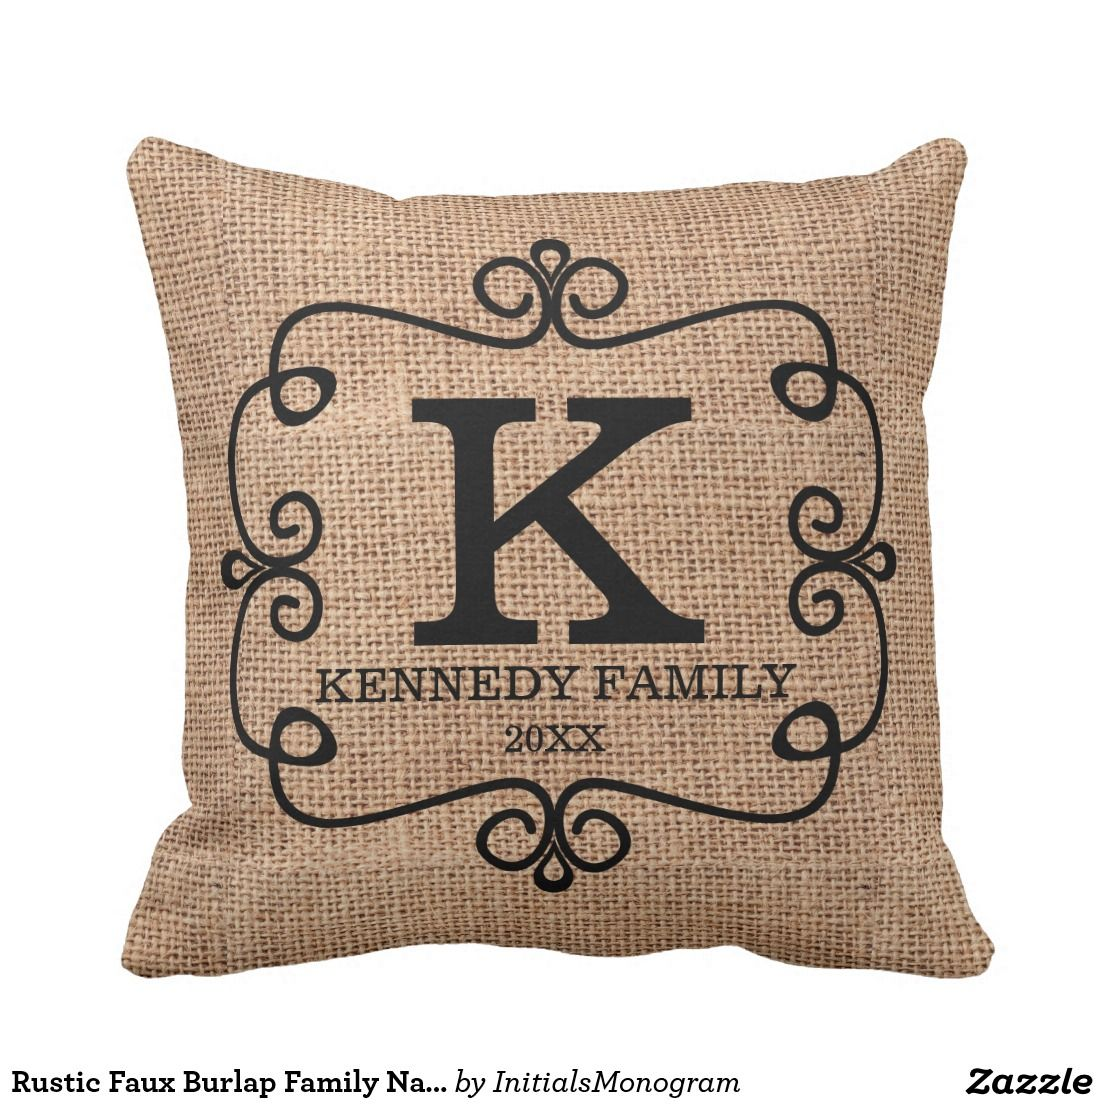 Rustic Faux Burlap Family Name Monogrammed Throw Pillow | Zazzle ...